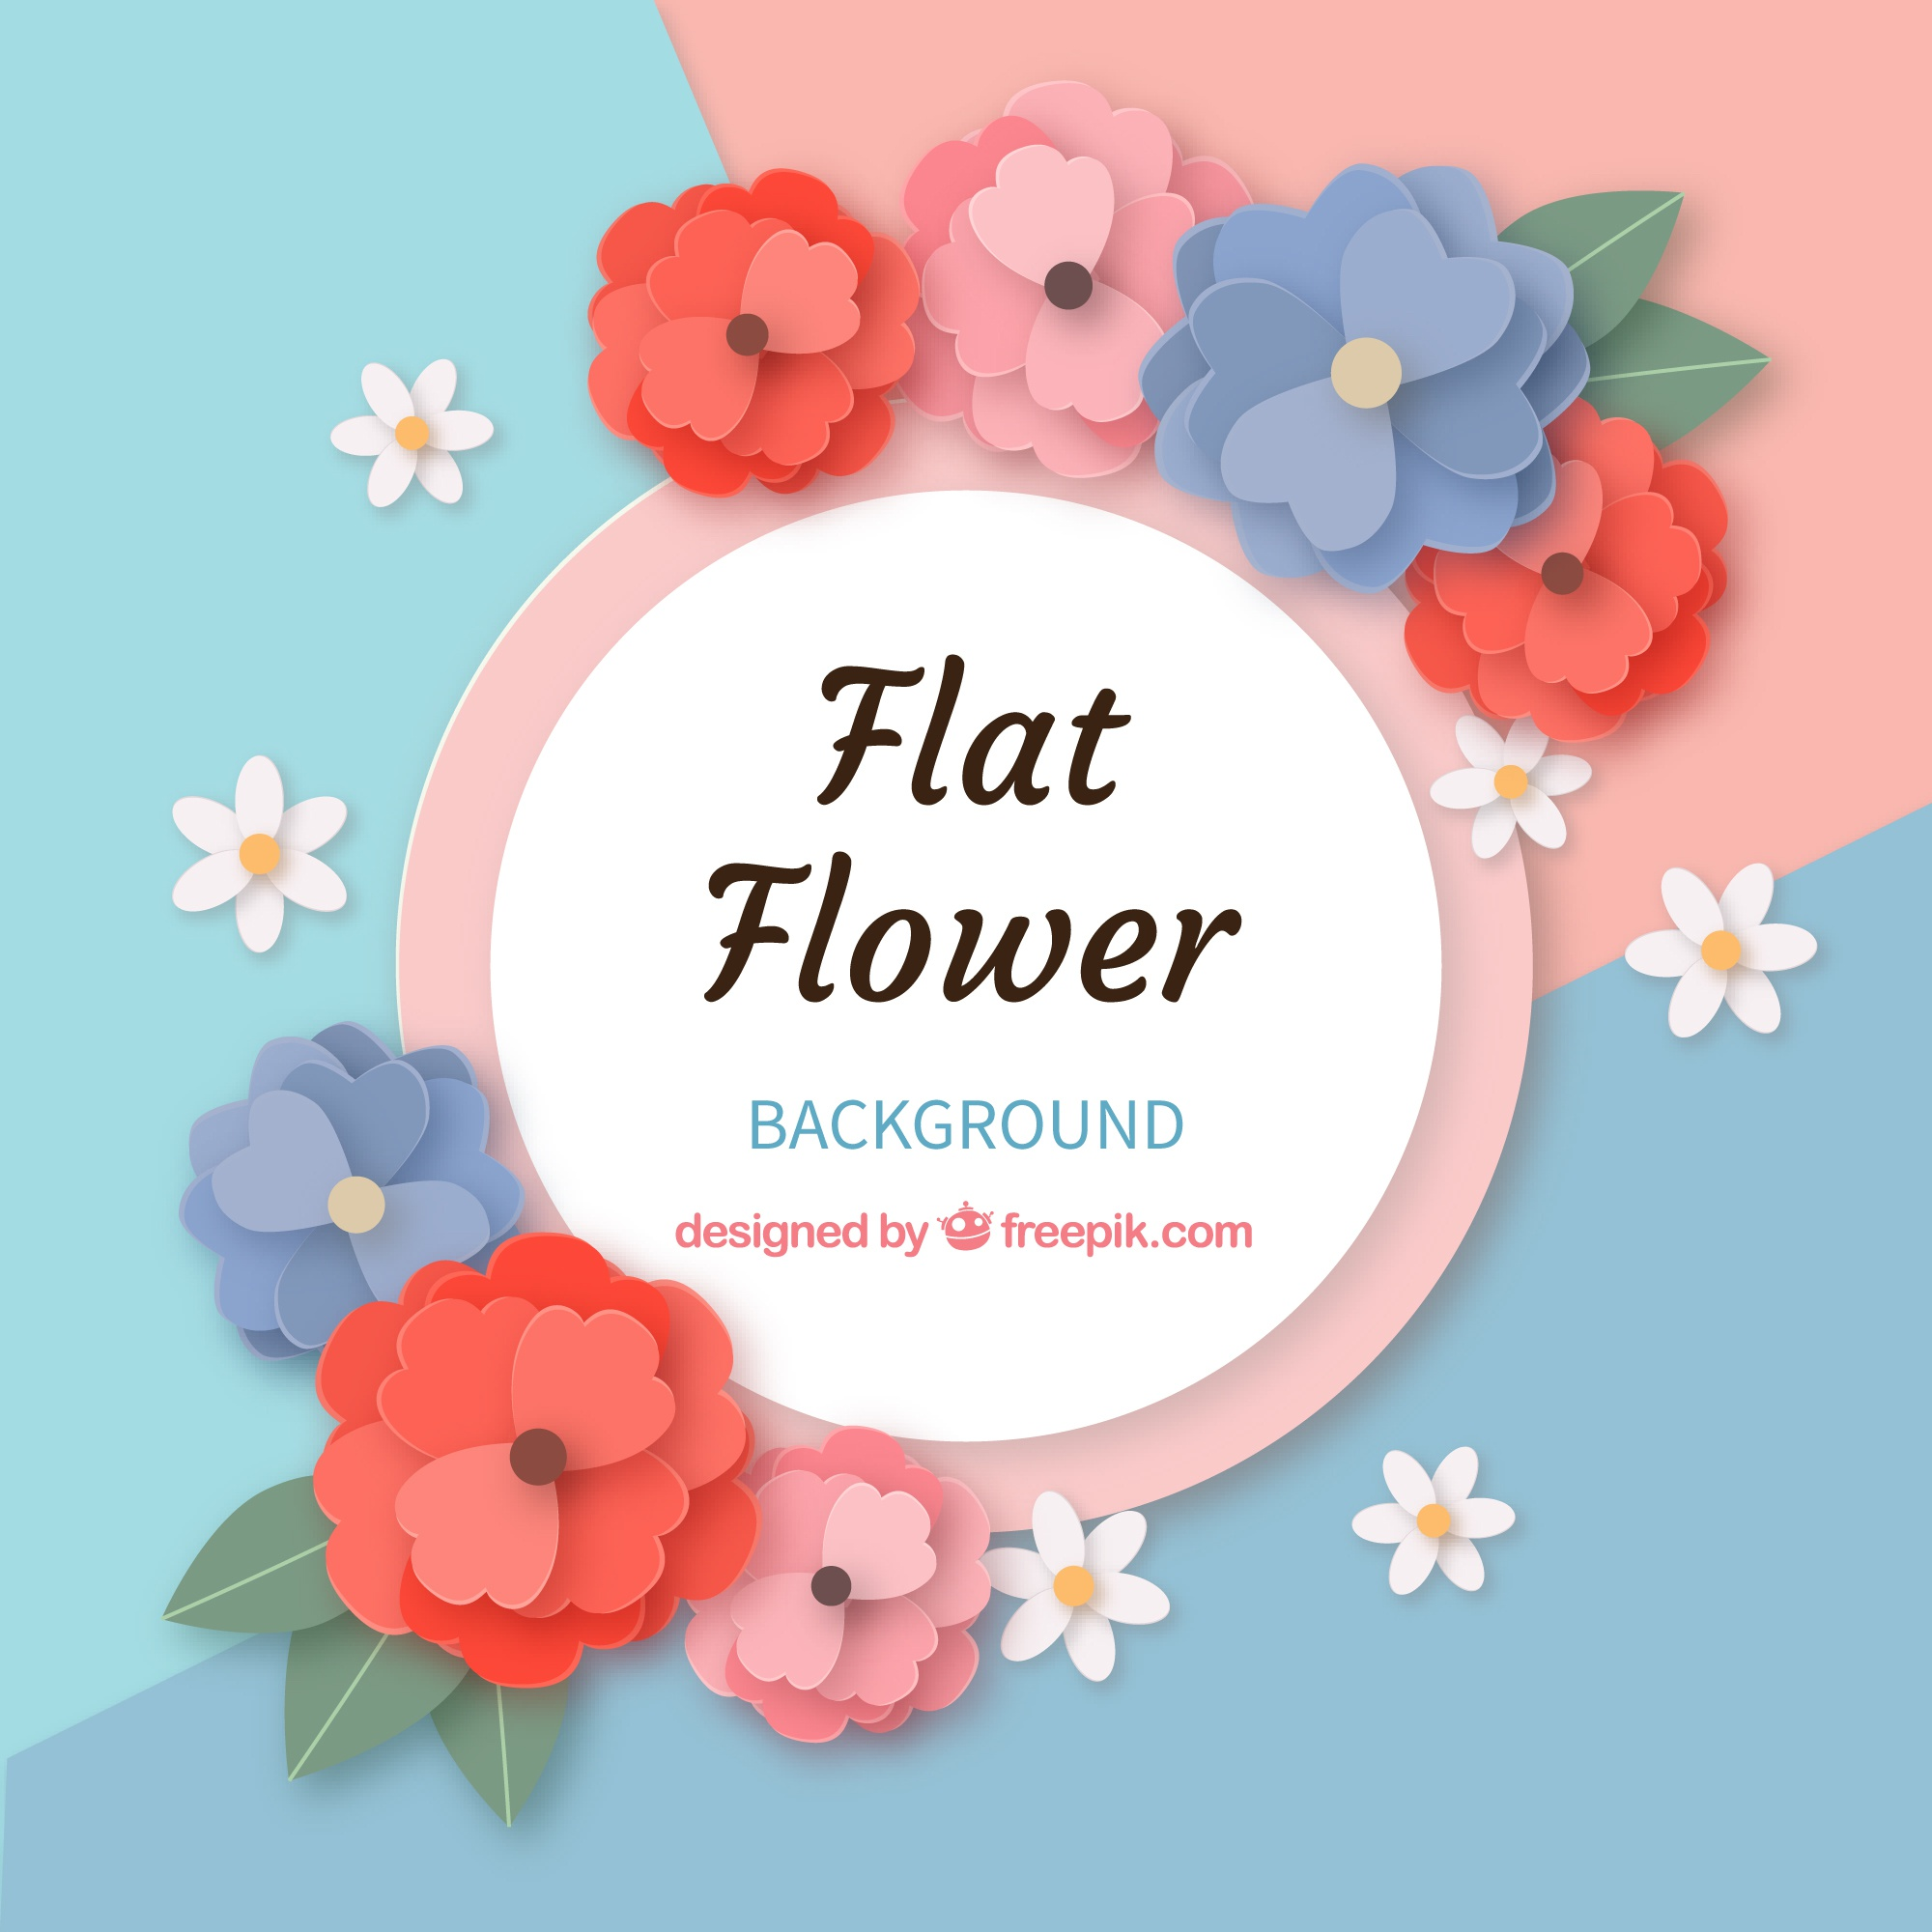 Flowers background in flat style